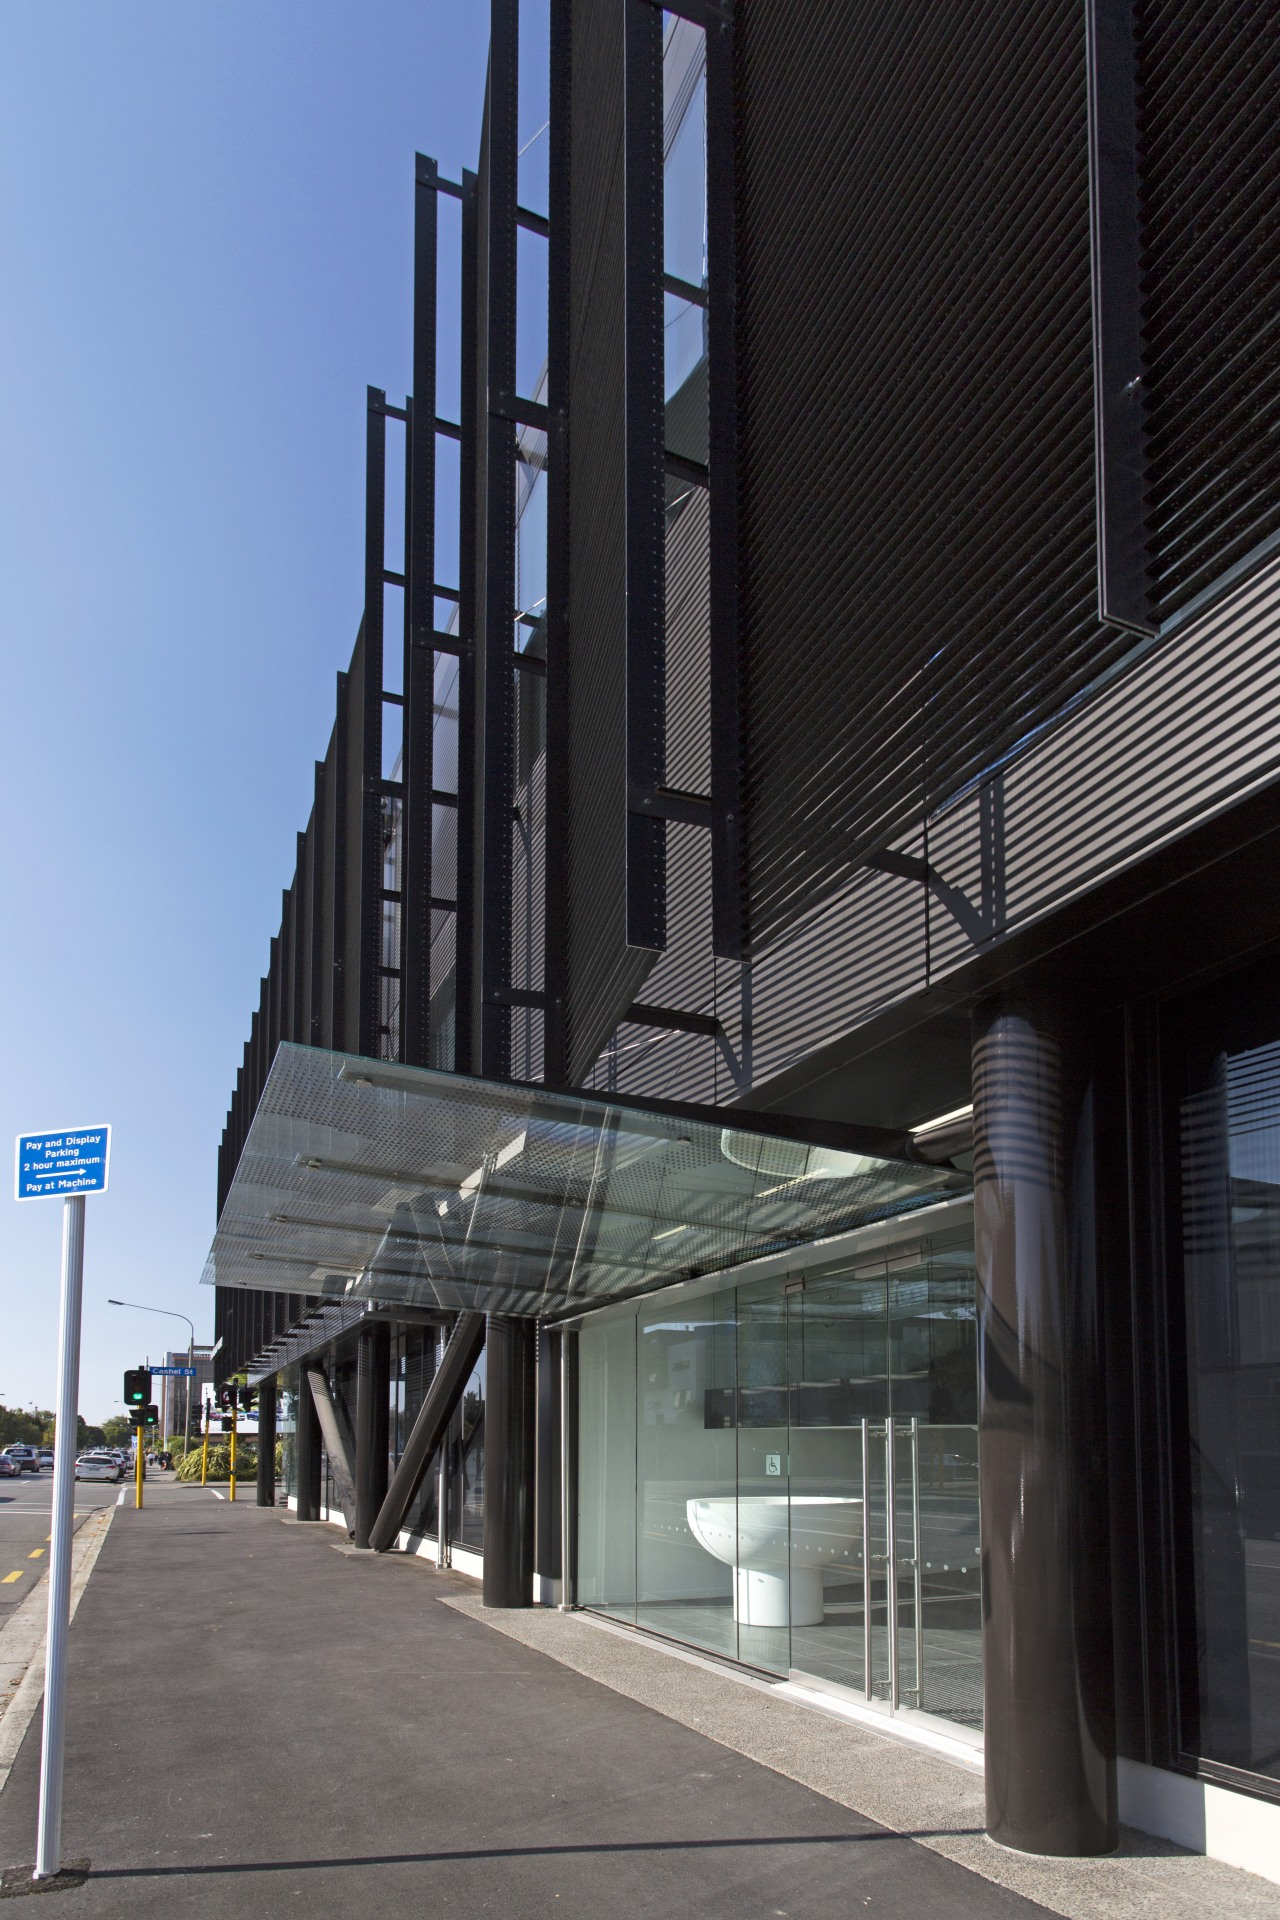 The ground floor of this new Christchurch building architecture, building, commercial building, condominium, corporate headquarters, facade, glass, headquarters, metropolitan area, mixed use, skyscraper, structure, black, gray